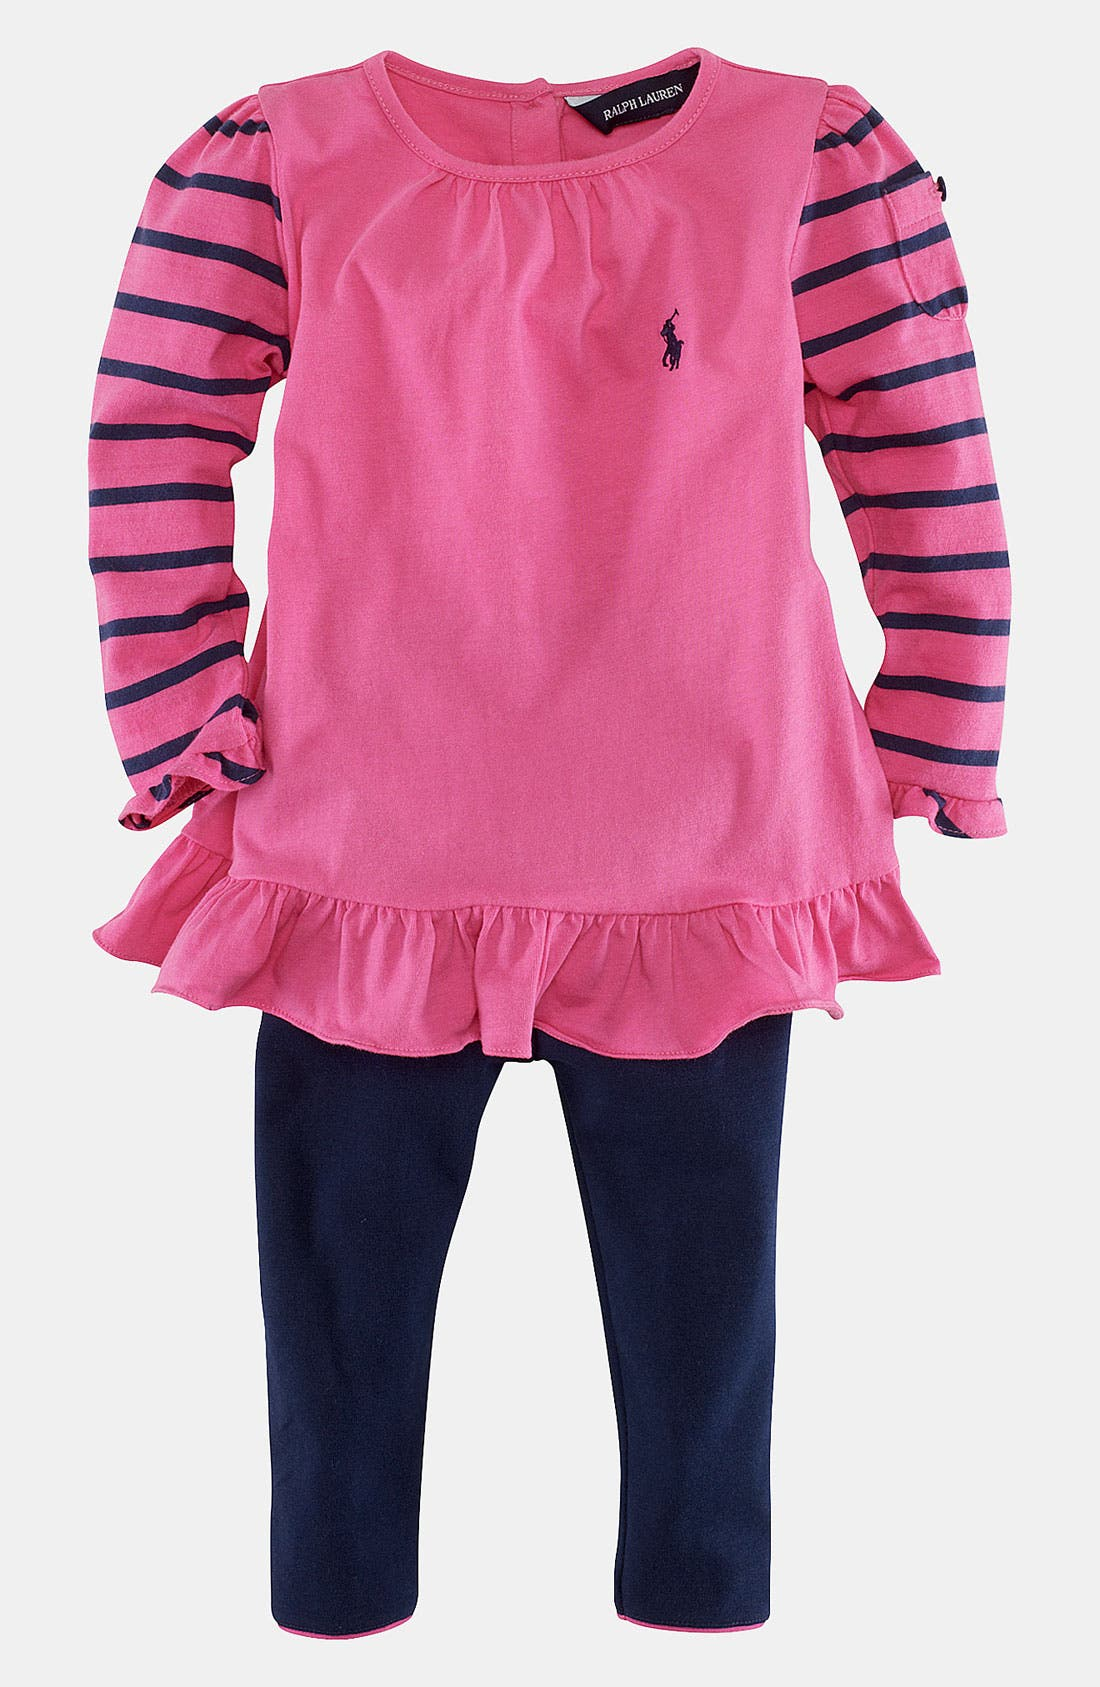 Alternate Image 1 Selected - Ralph Lauren Shirt & Leggings (Infant)